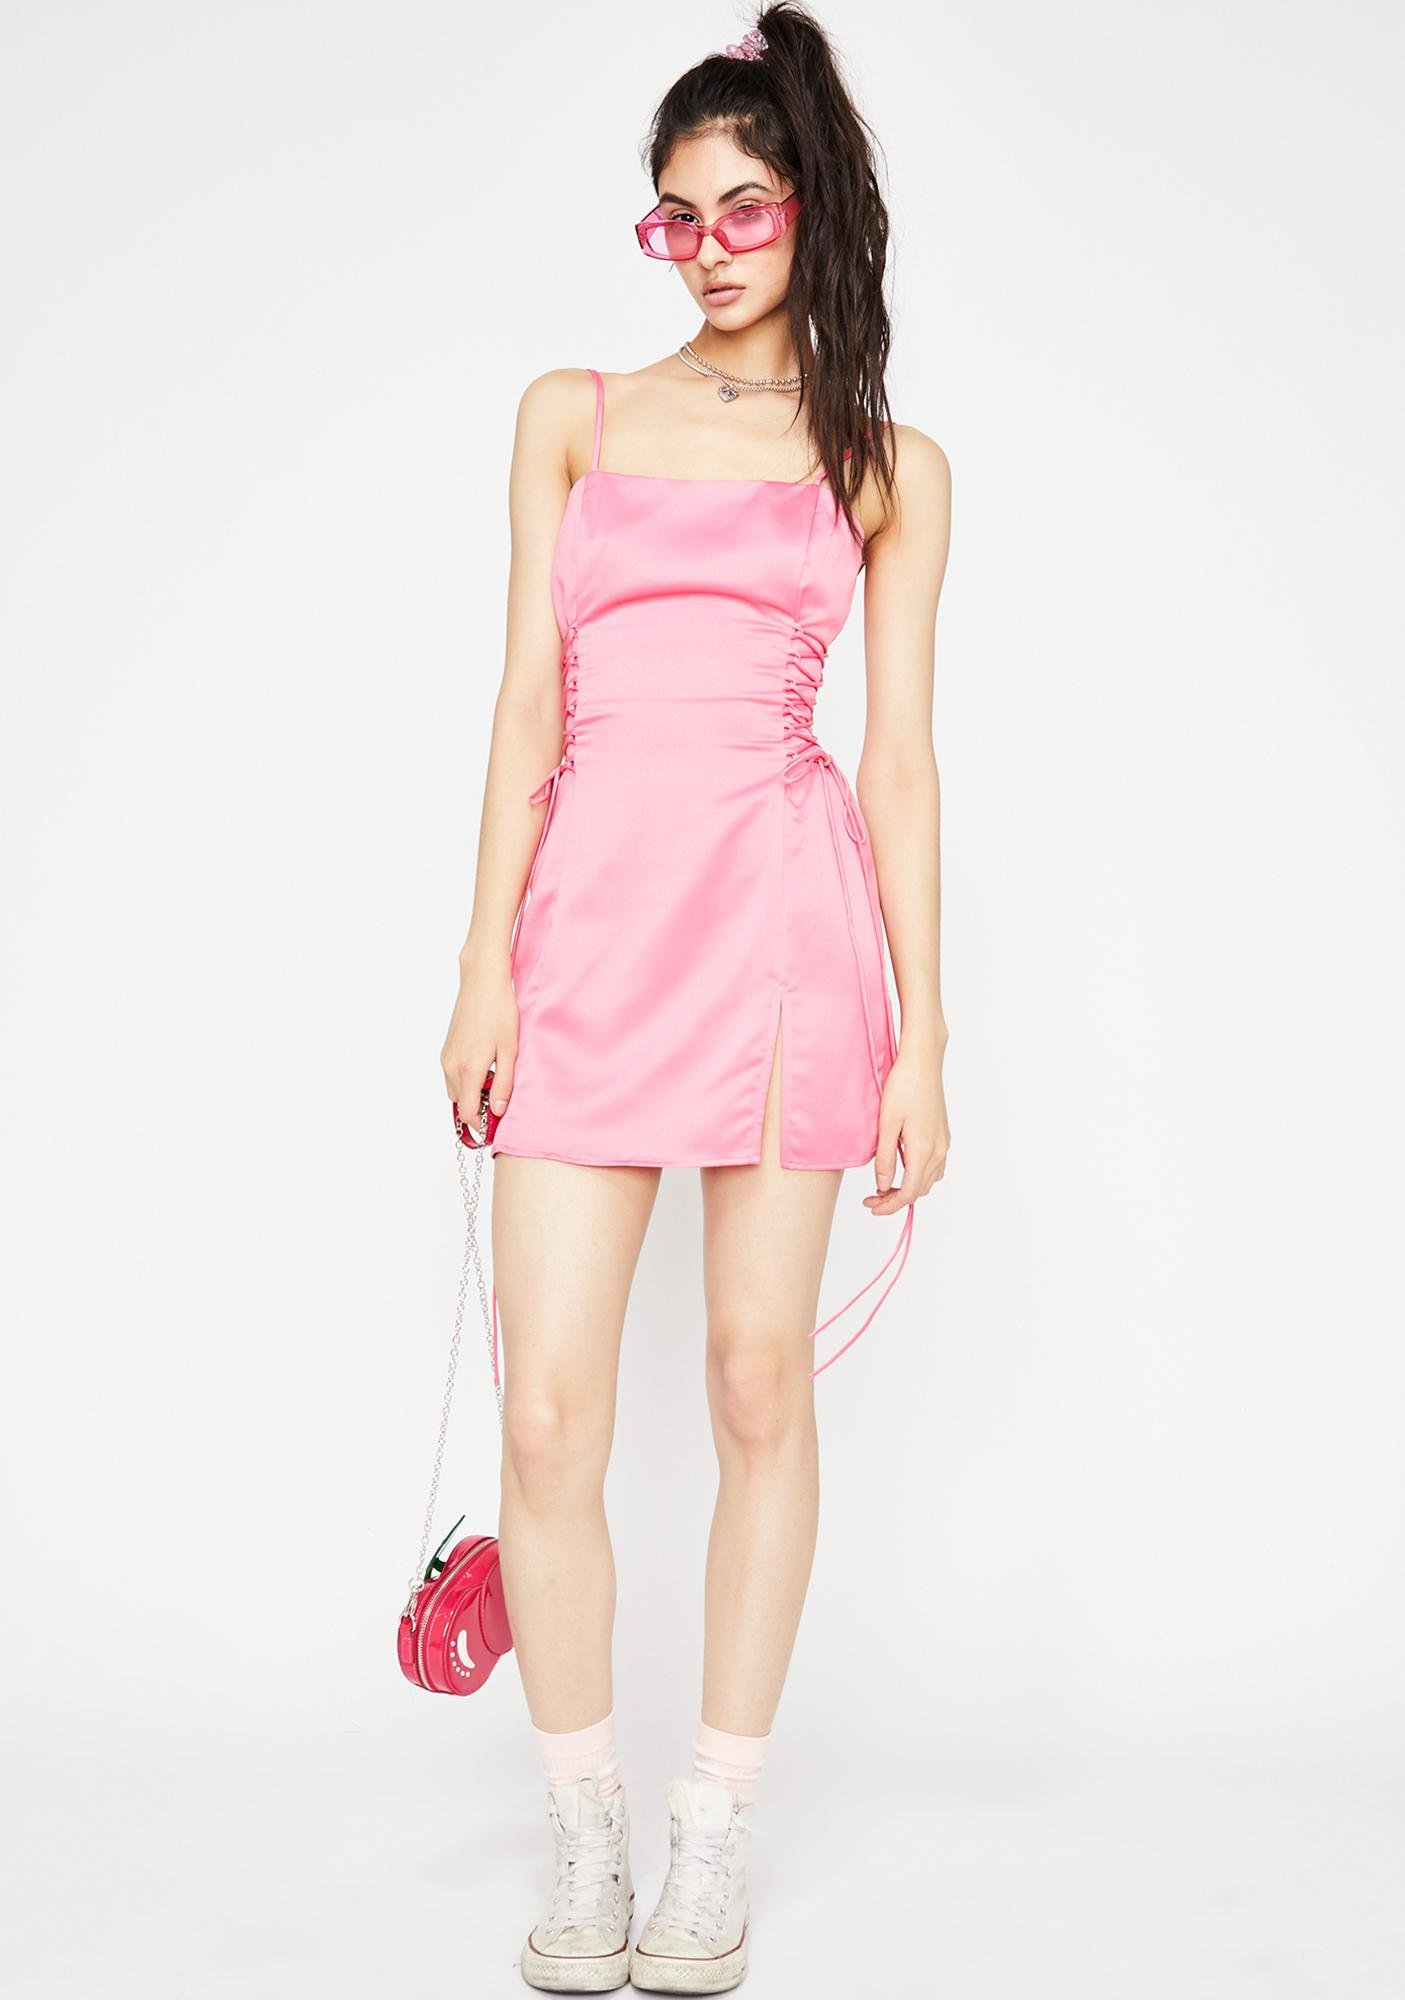 Candy Spoil Myself Lace-Up Dress